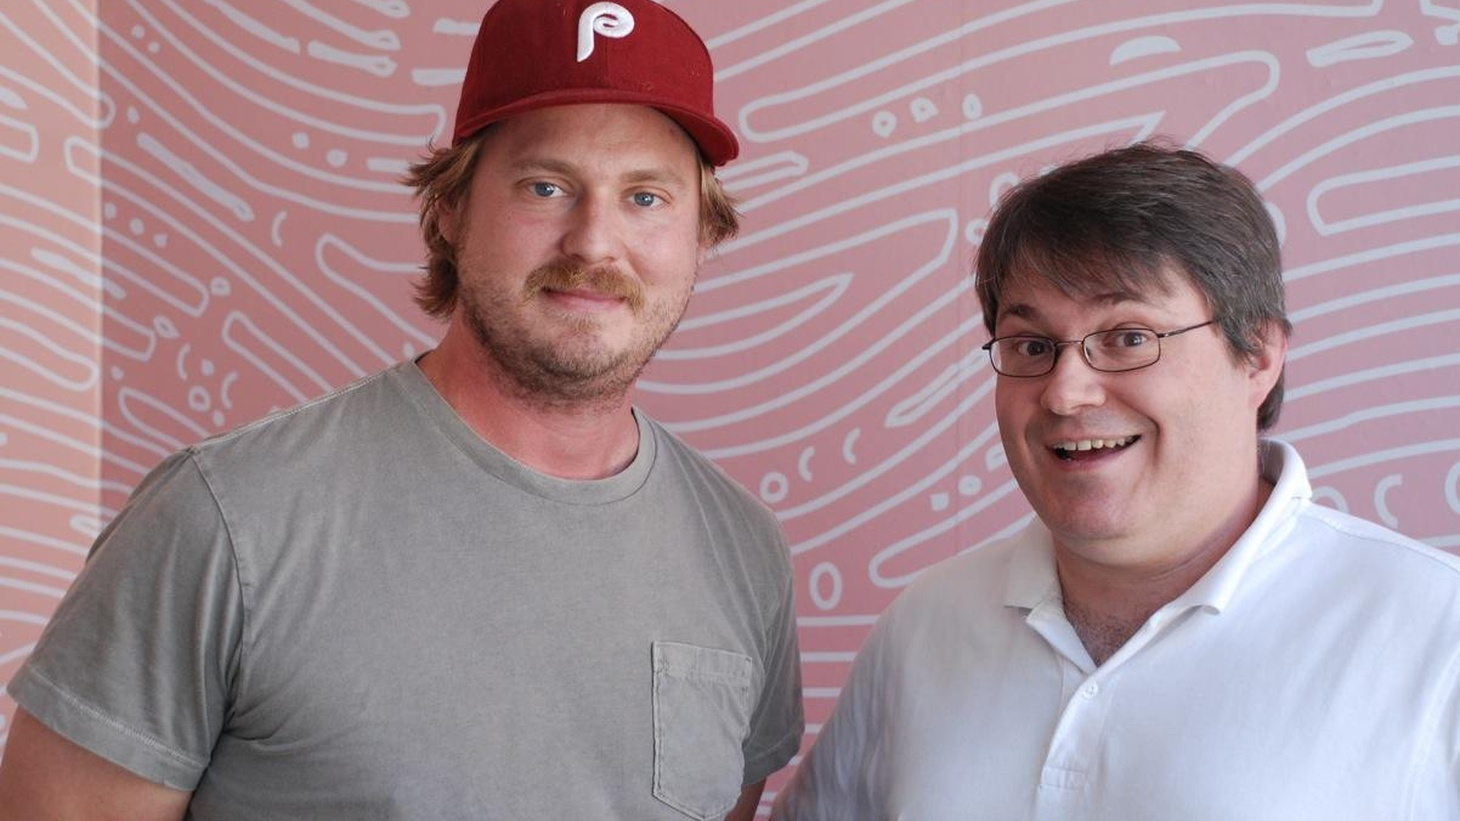 "As part of the comedy duo ""Tim and Eric"", comedian Tim Heidecker has created a number of hilarious TV shows, but he takes music seriously.  He shares the gateway artist into his favorite 70's records, lets us in on a little known alt-country band and ruminates on the lyrical wit of Pavement and Guided by Voices."